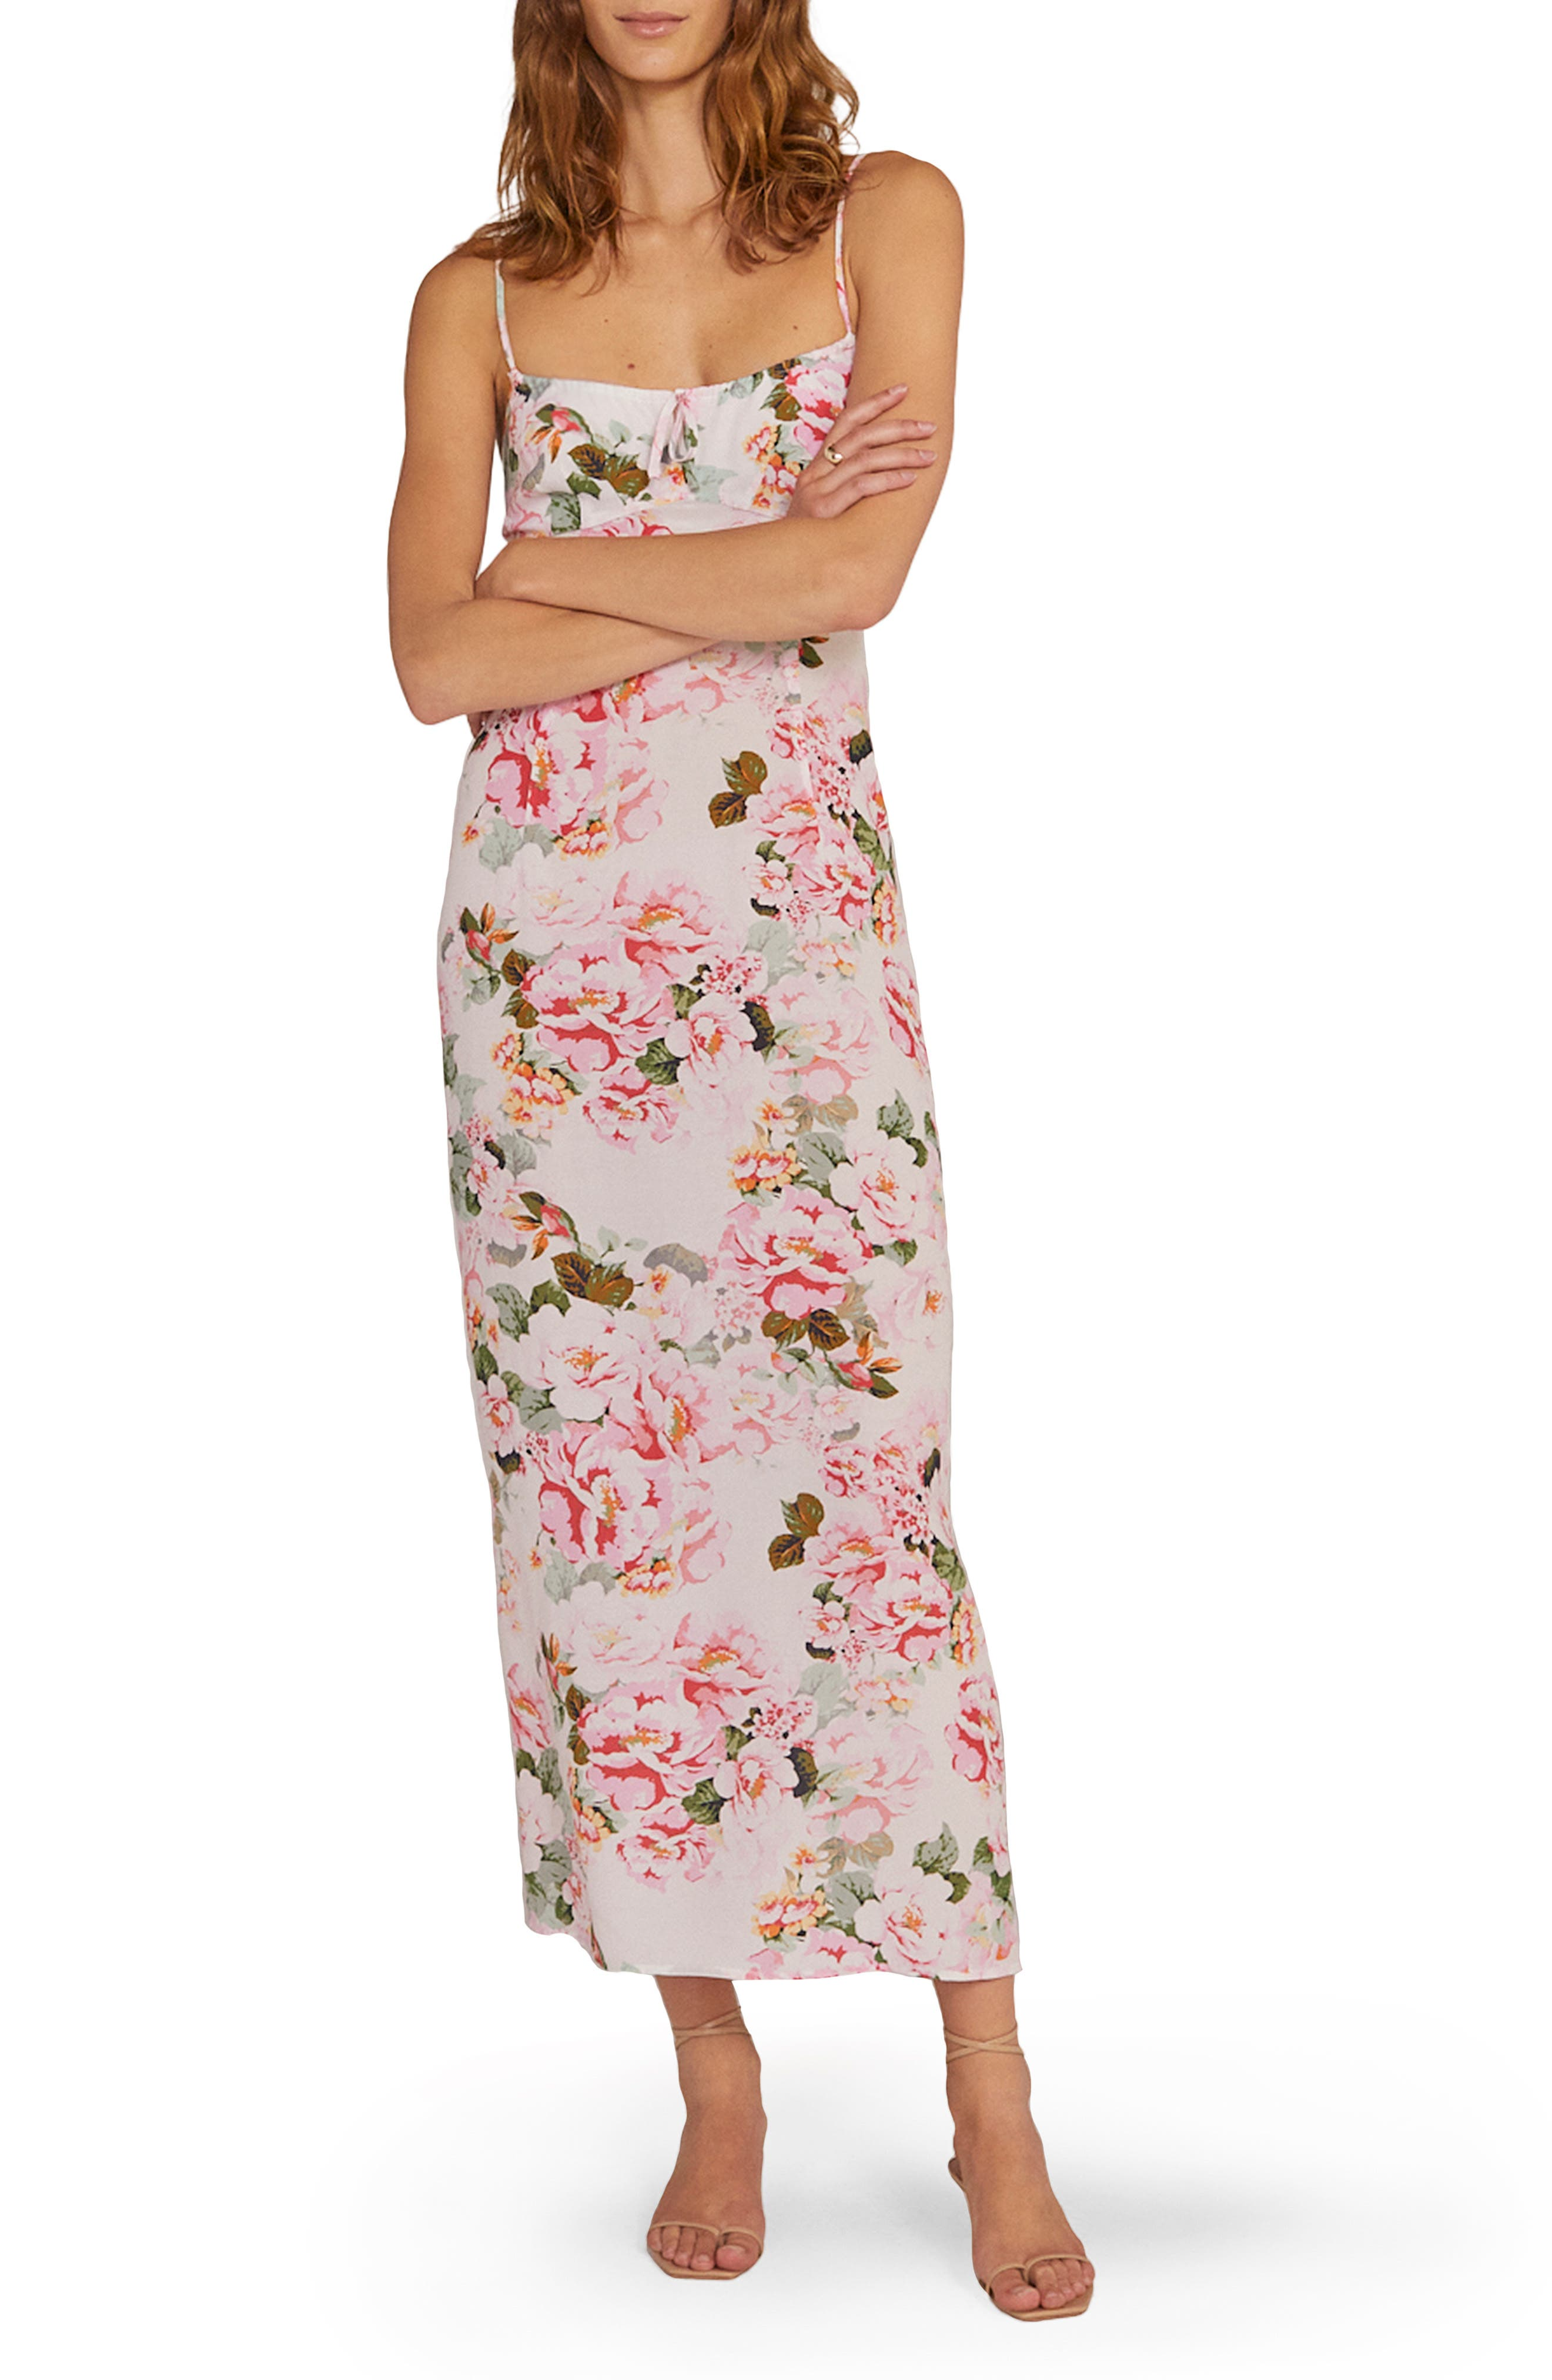 The One That Got Away Floral Slipdress